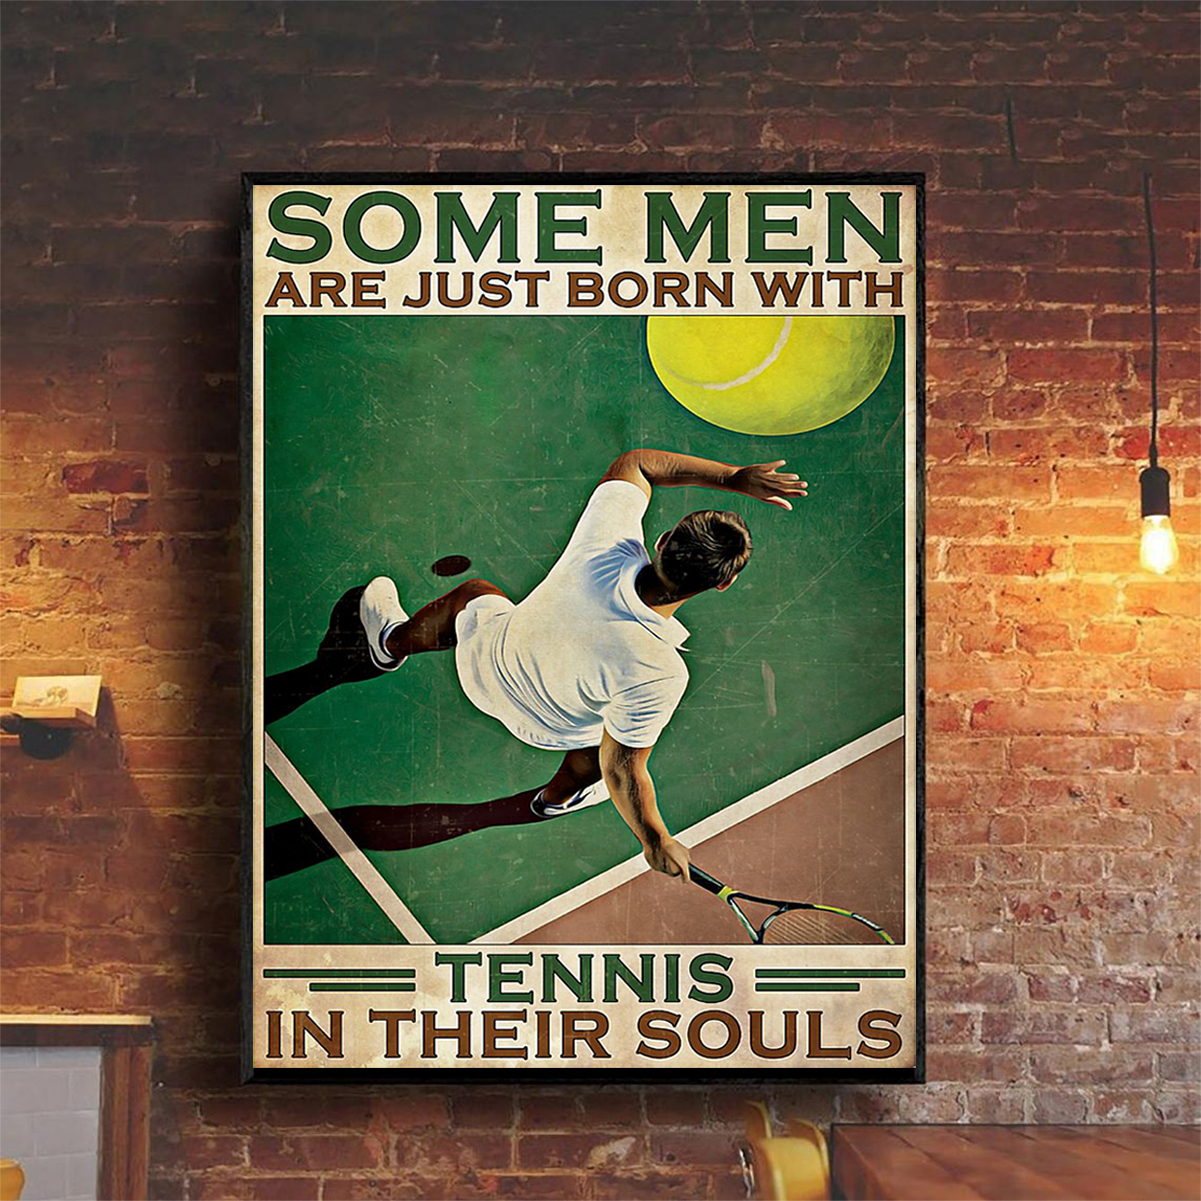 Some men are just born with tennis in their souls poster A2